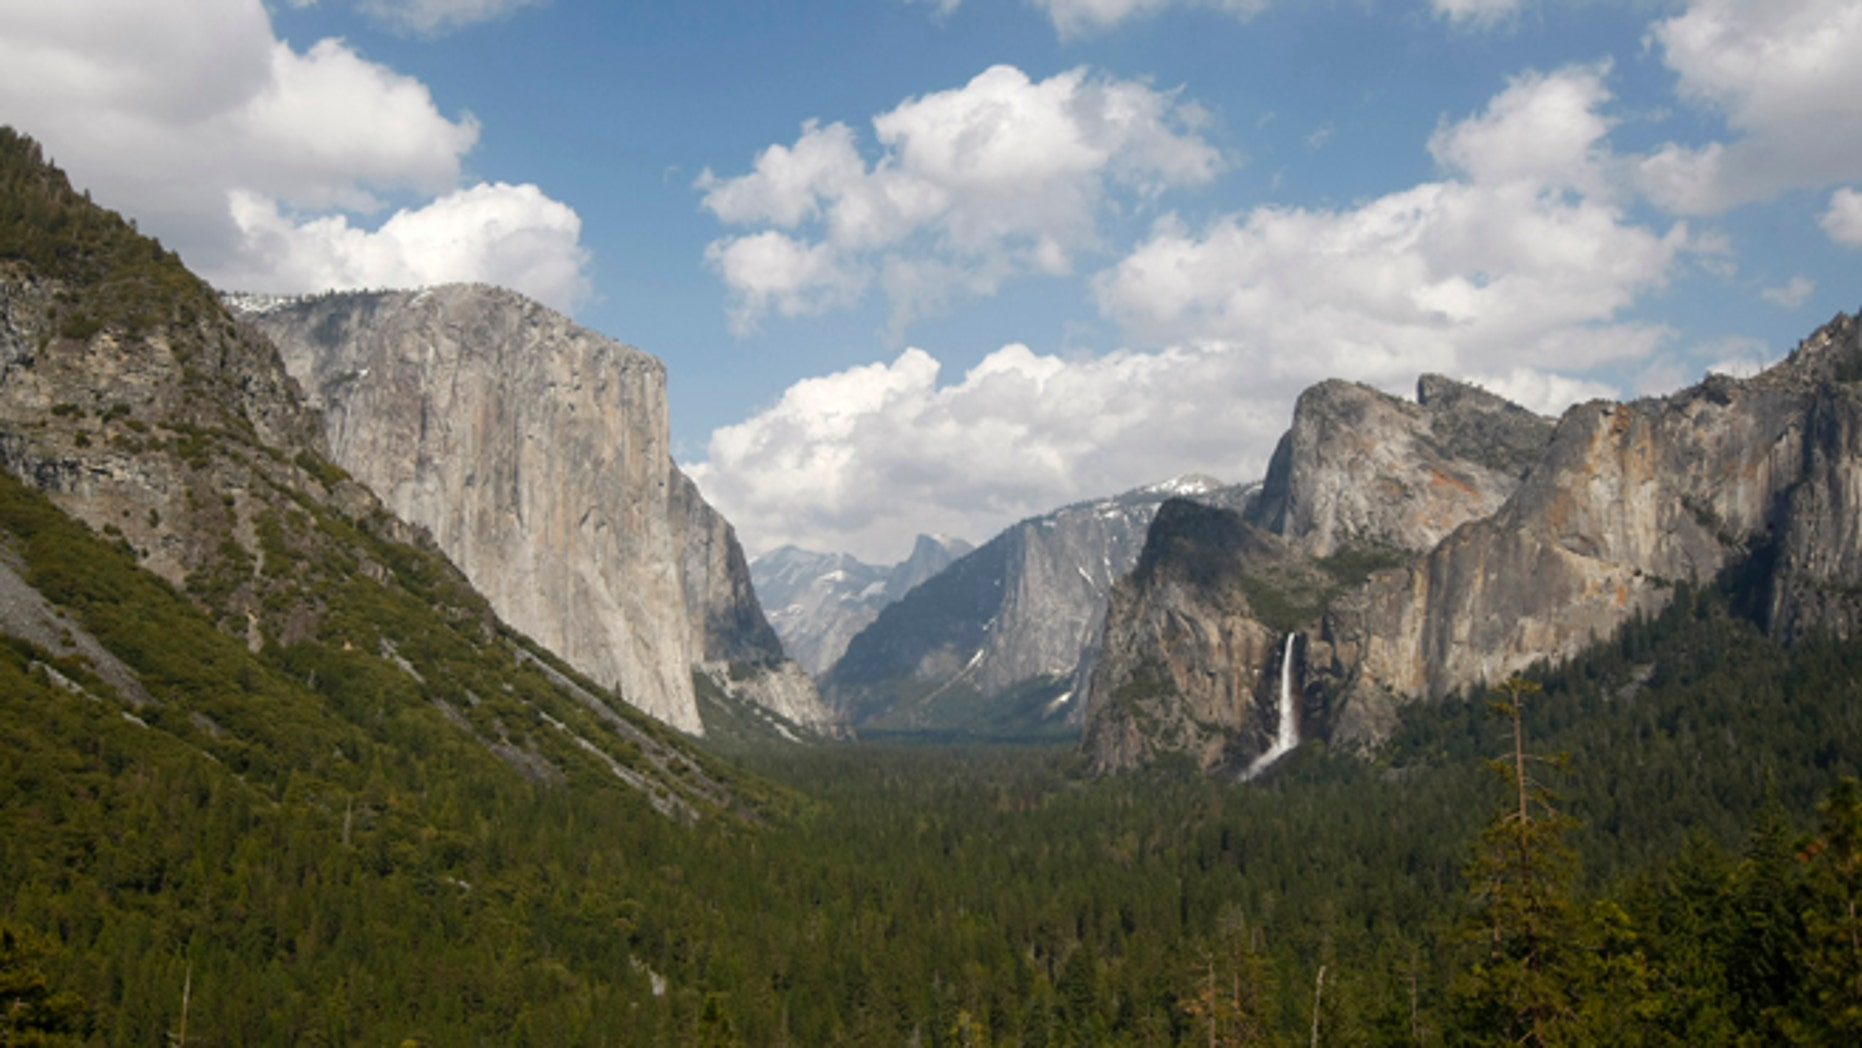 A climber was stuck 230 below the summit of El Capitan, seen on the left, during California's first winter snowstorm of the season struck.